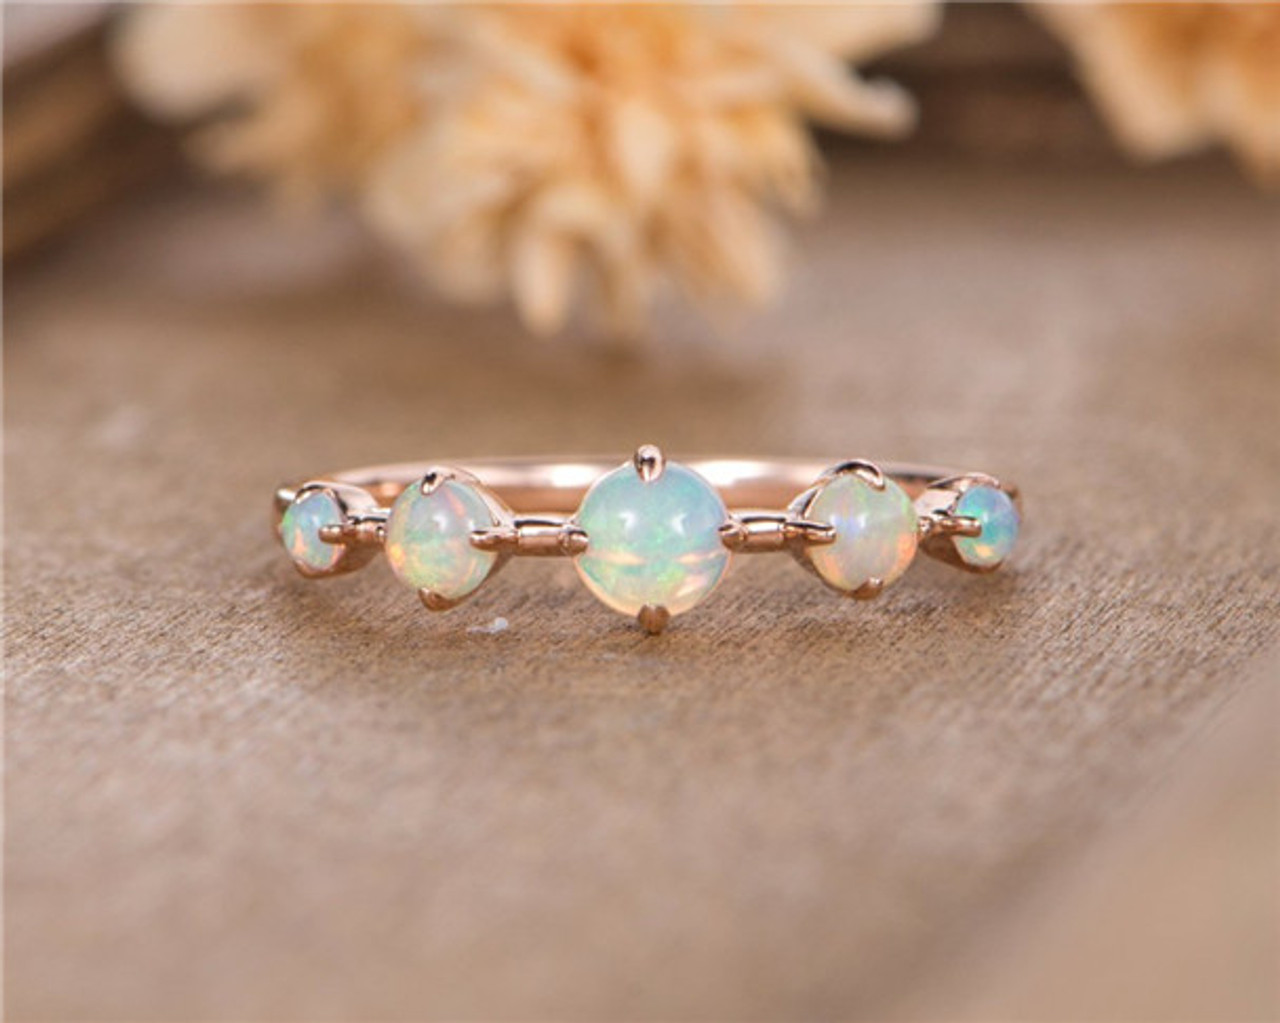 Opal Wedding Band.Opal Wedding Band Rose Gold Five Stone October Birthstone Stacking Matching Bridal Anniversary Ring